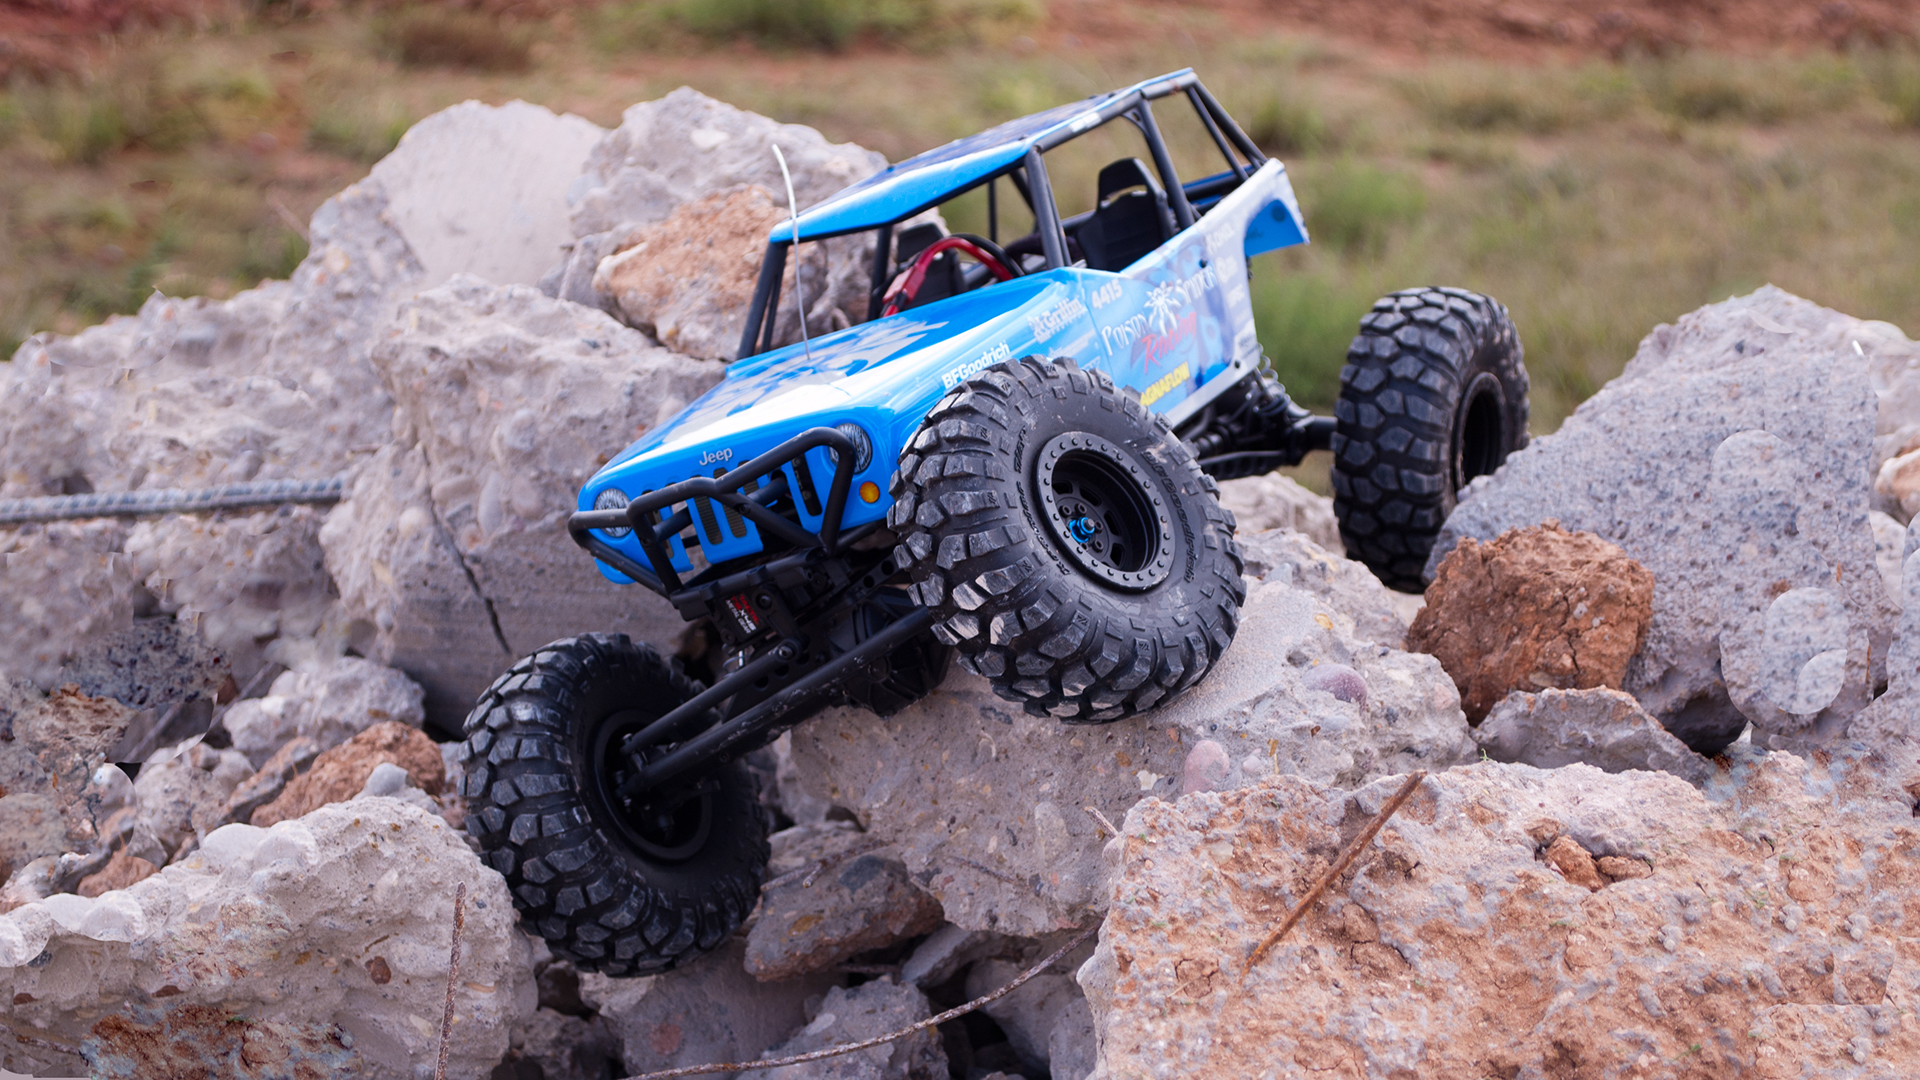 How To Get Into Hobby Rc Driving Rock Crawlers Tested Easily Programmable Remotecontrol Cars Middle Years 7 10 Crawlin Aint Easy It Takes A Capable Machine And Skilled Driver